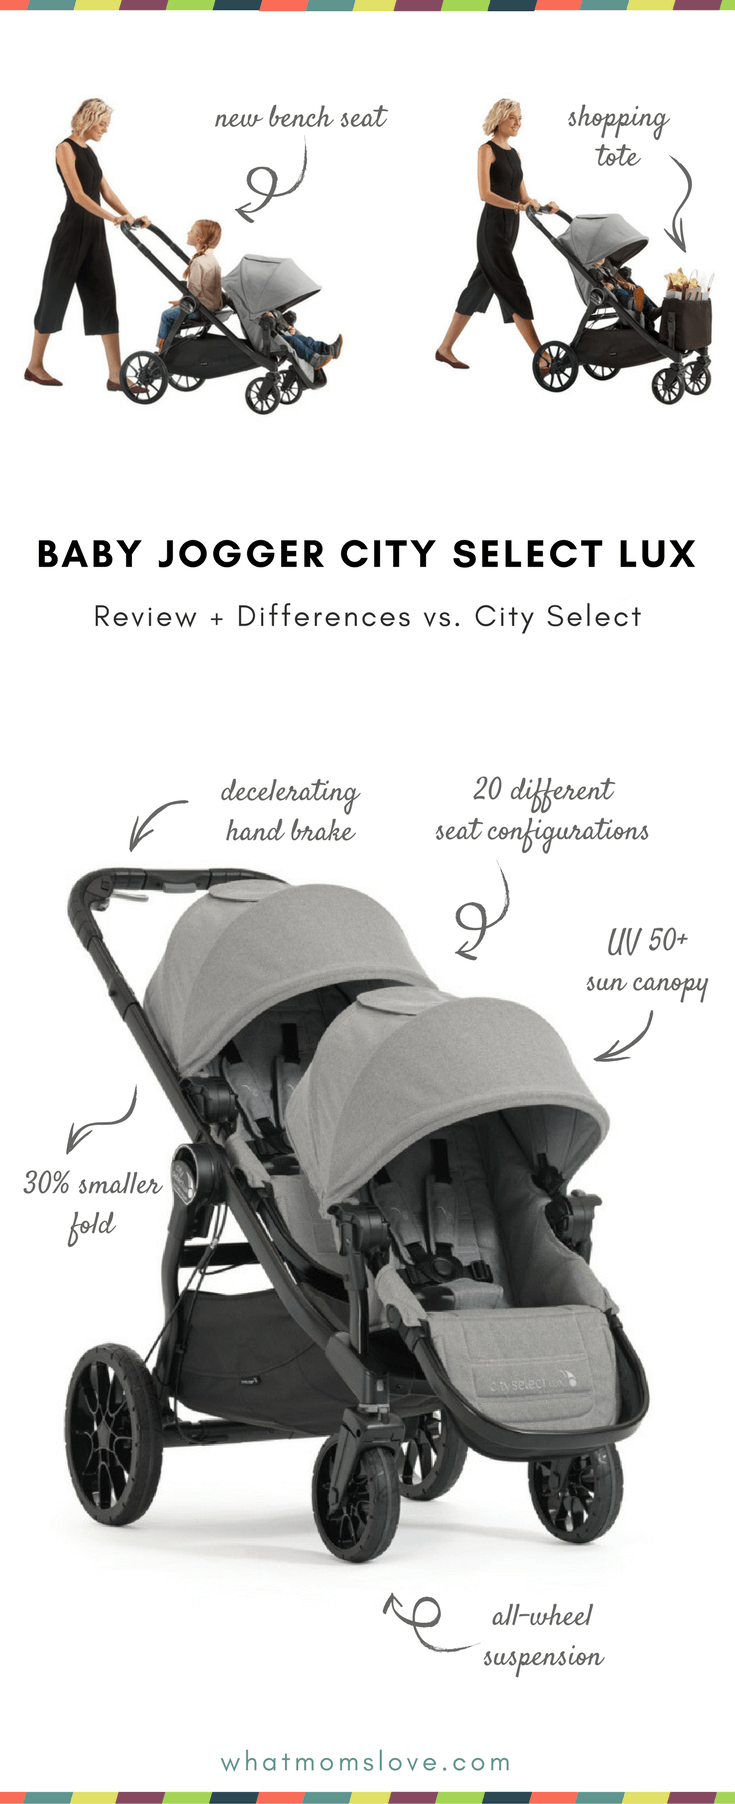 Phenomenal Baby Jogger City Select Lux Review The Super Adaptable Machost Co Dining Chair Design Ideas Machostcouk